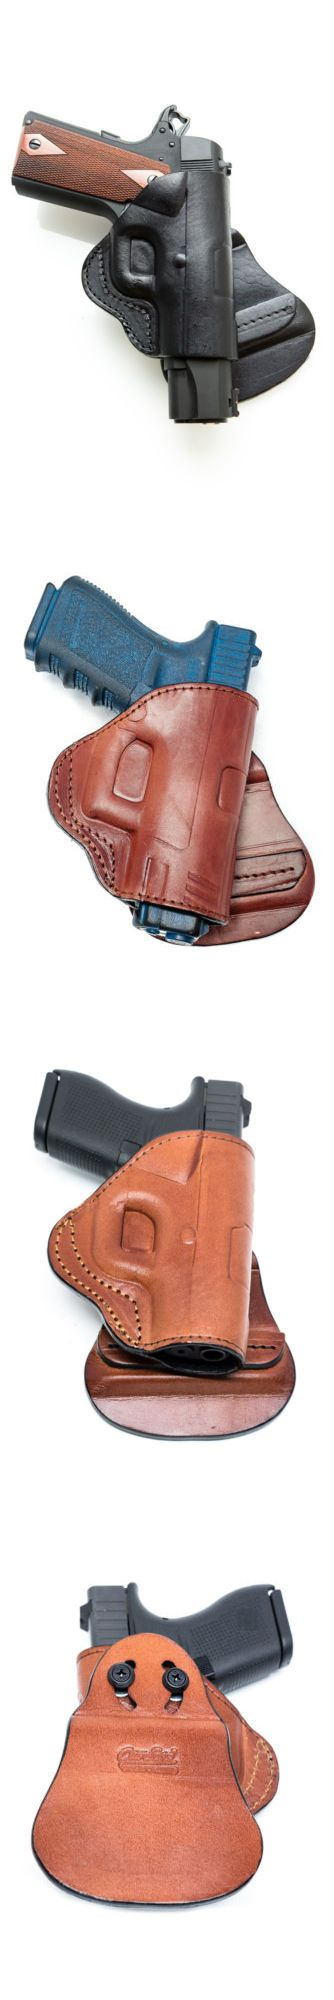 Holsters 177885: Paddle Leather Holster Fits Taurus Pt92 - Black Brown - Right Left -> BUY IT NOW ONLY: $41.95 on eBay!